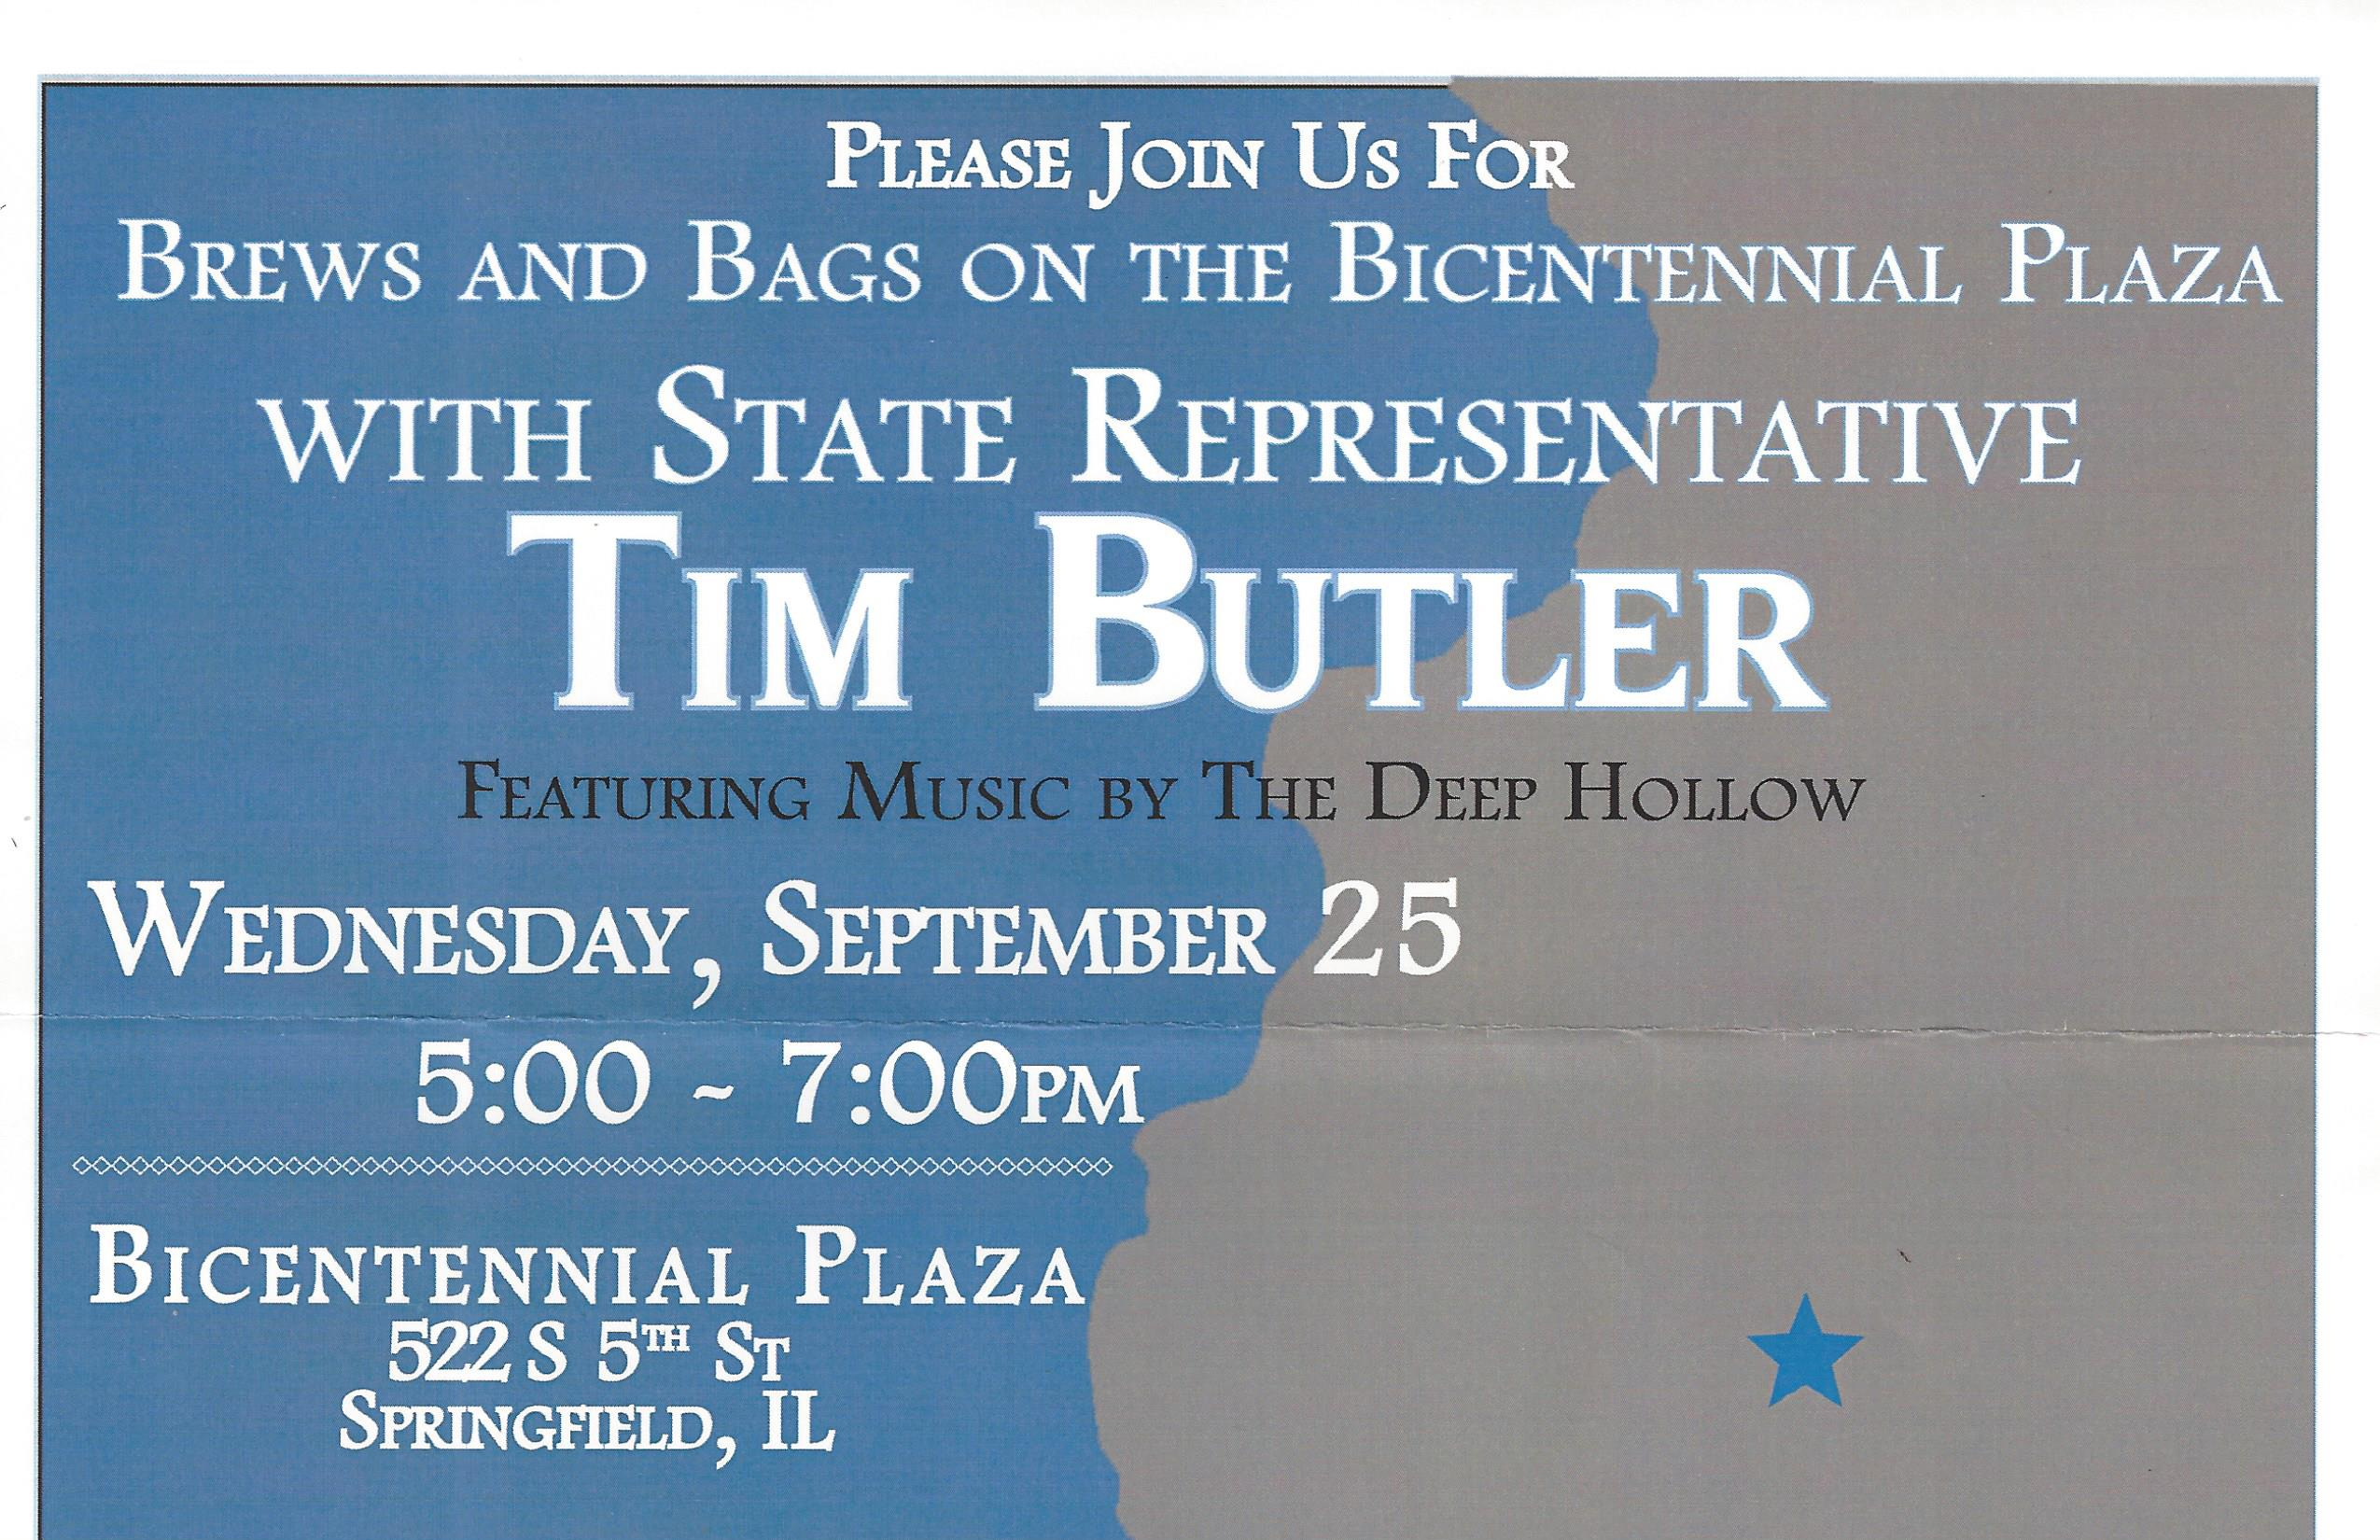 Tim Butler Brews & Bags at the Bicentennial Plaza